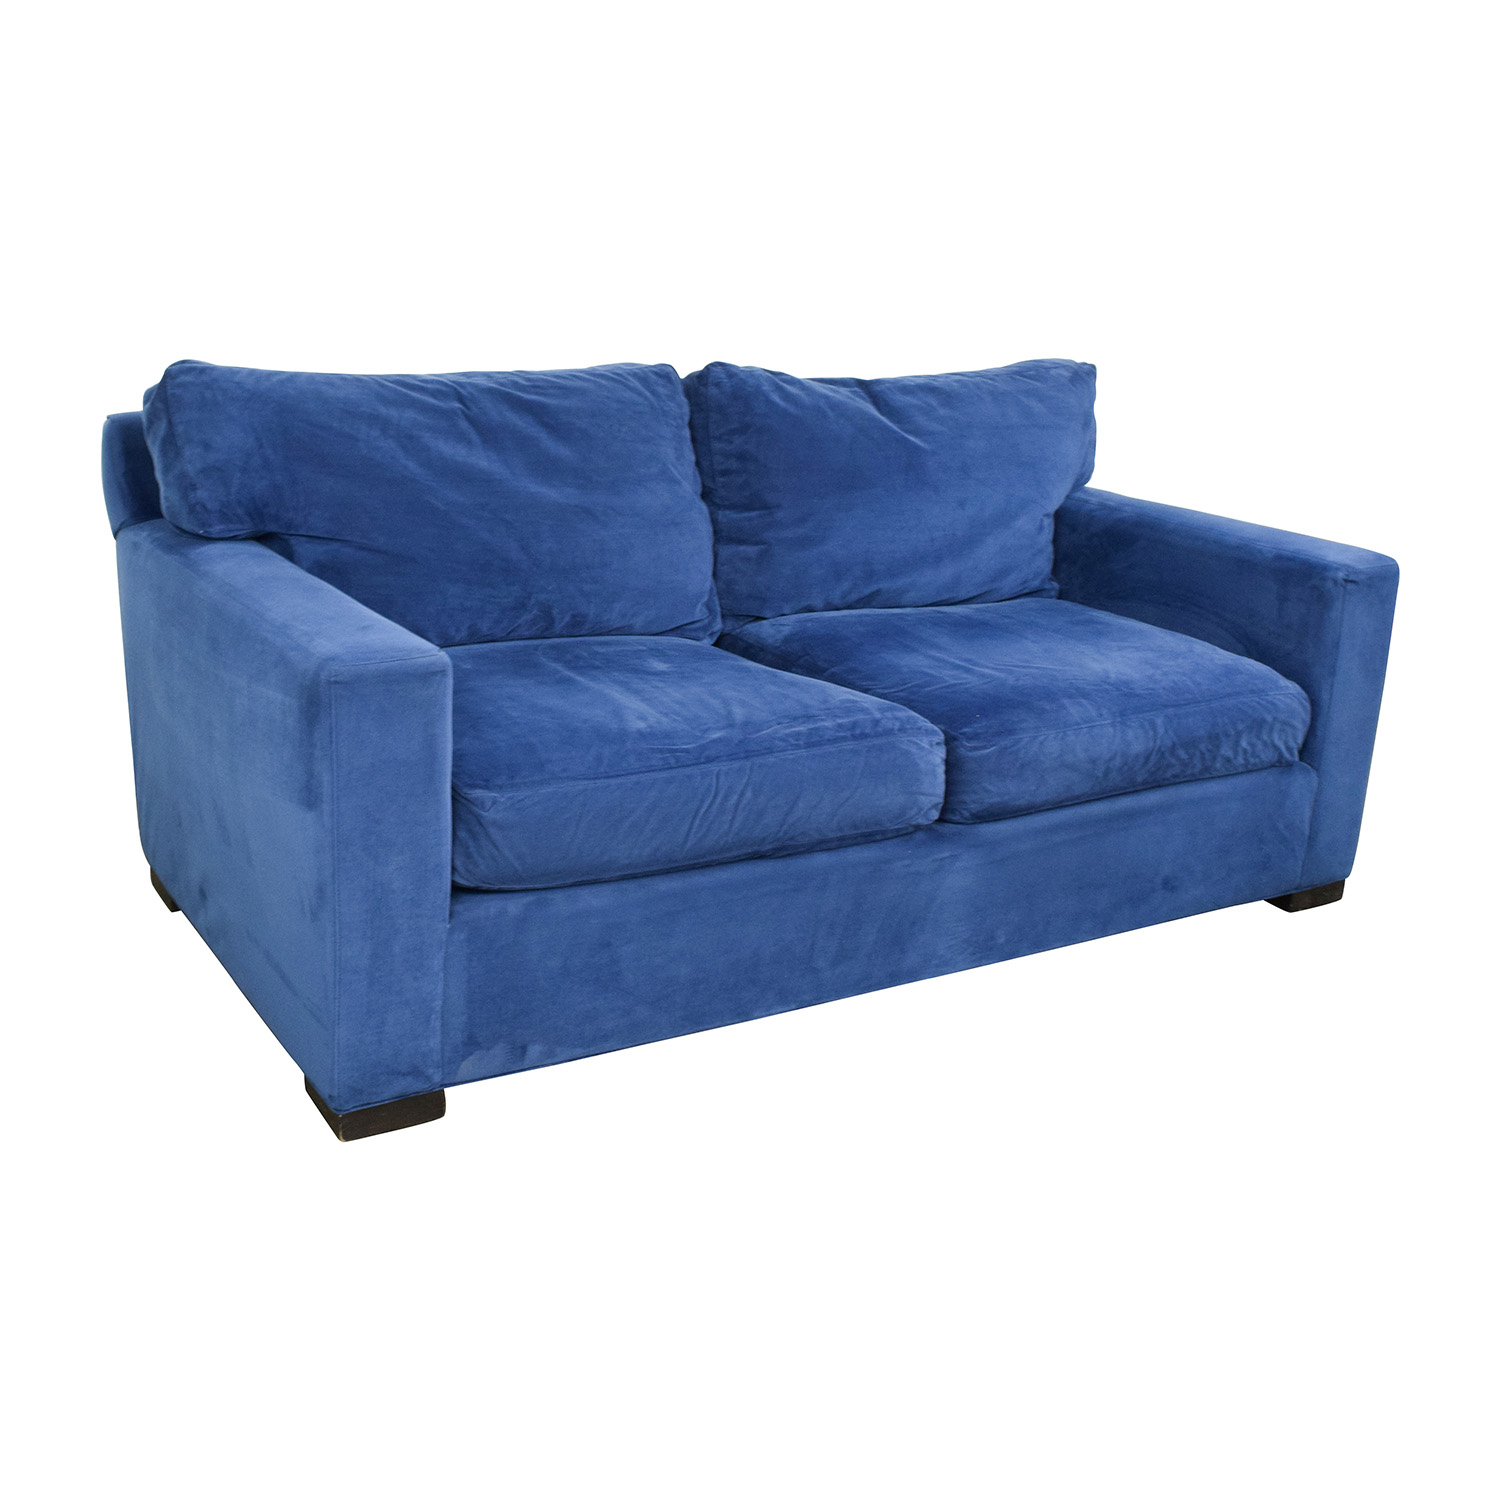 Pleasing Axis Sofa Crate And Barrel Barn Sofa Andrewgaddart Wooden Chair Designs For Living Room Andrewgaddartcom